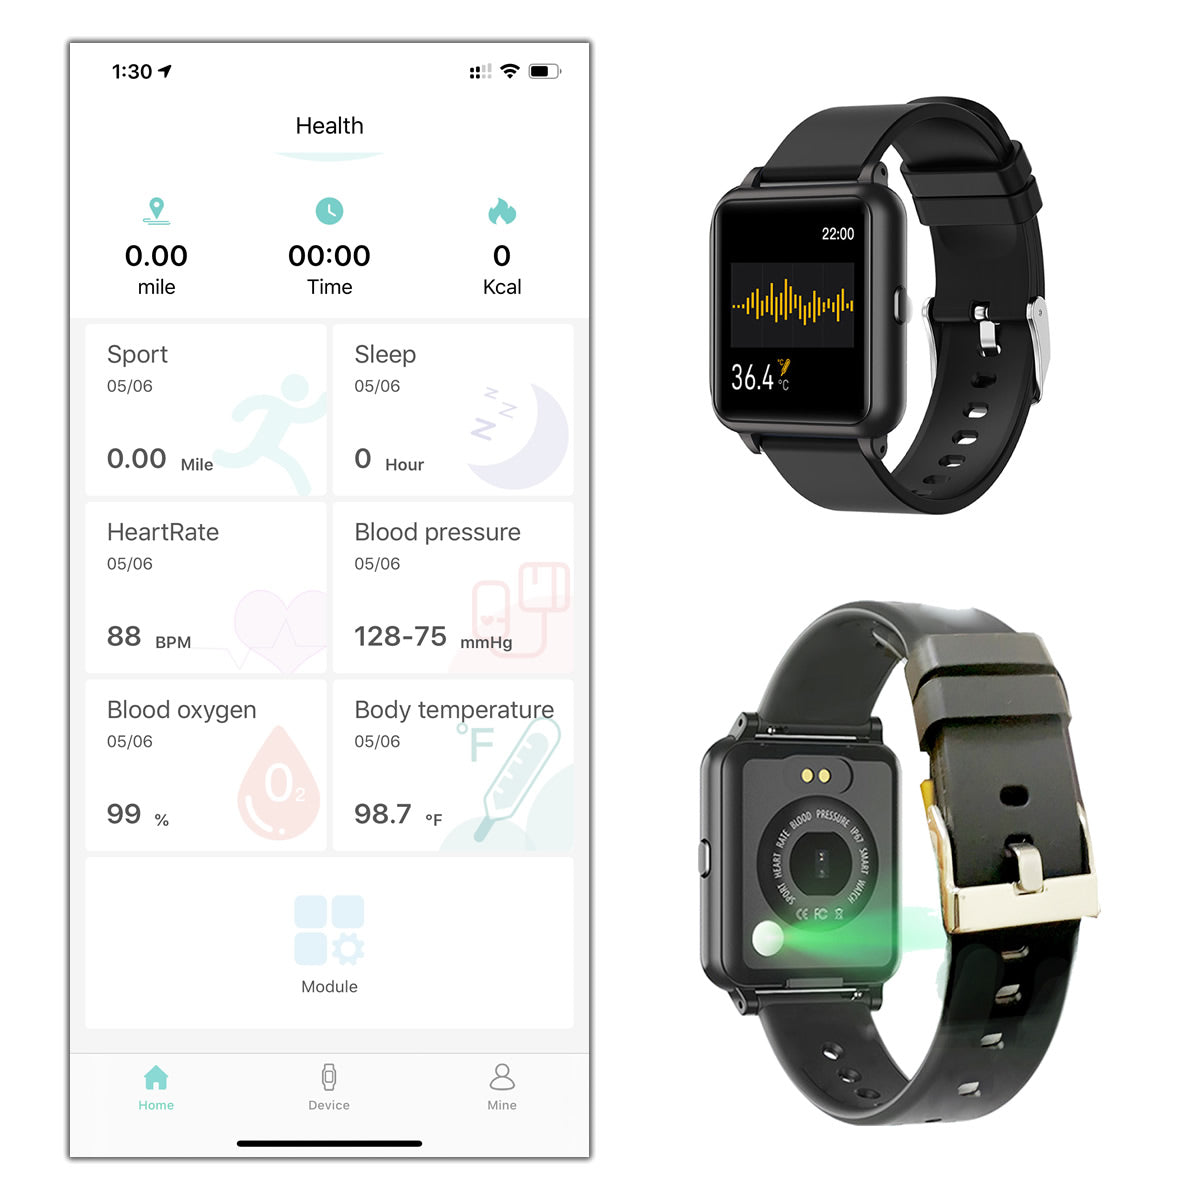 shopify-OXITEMP Smart Watch With Live Oximeter, Thermometer And Pulse Monitor With Activity Tracker-2